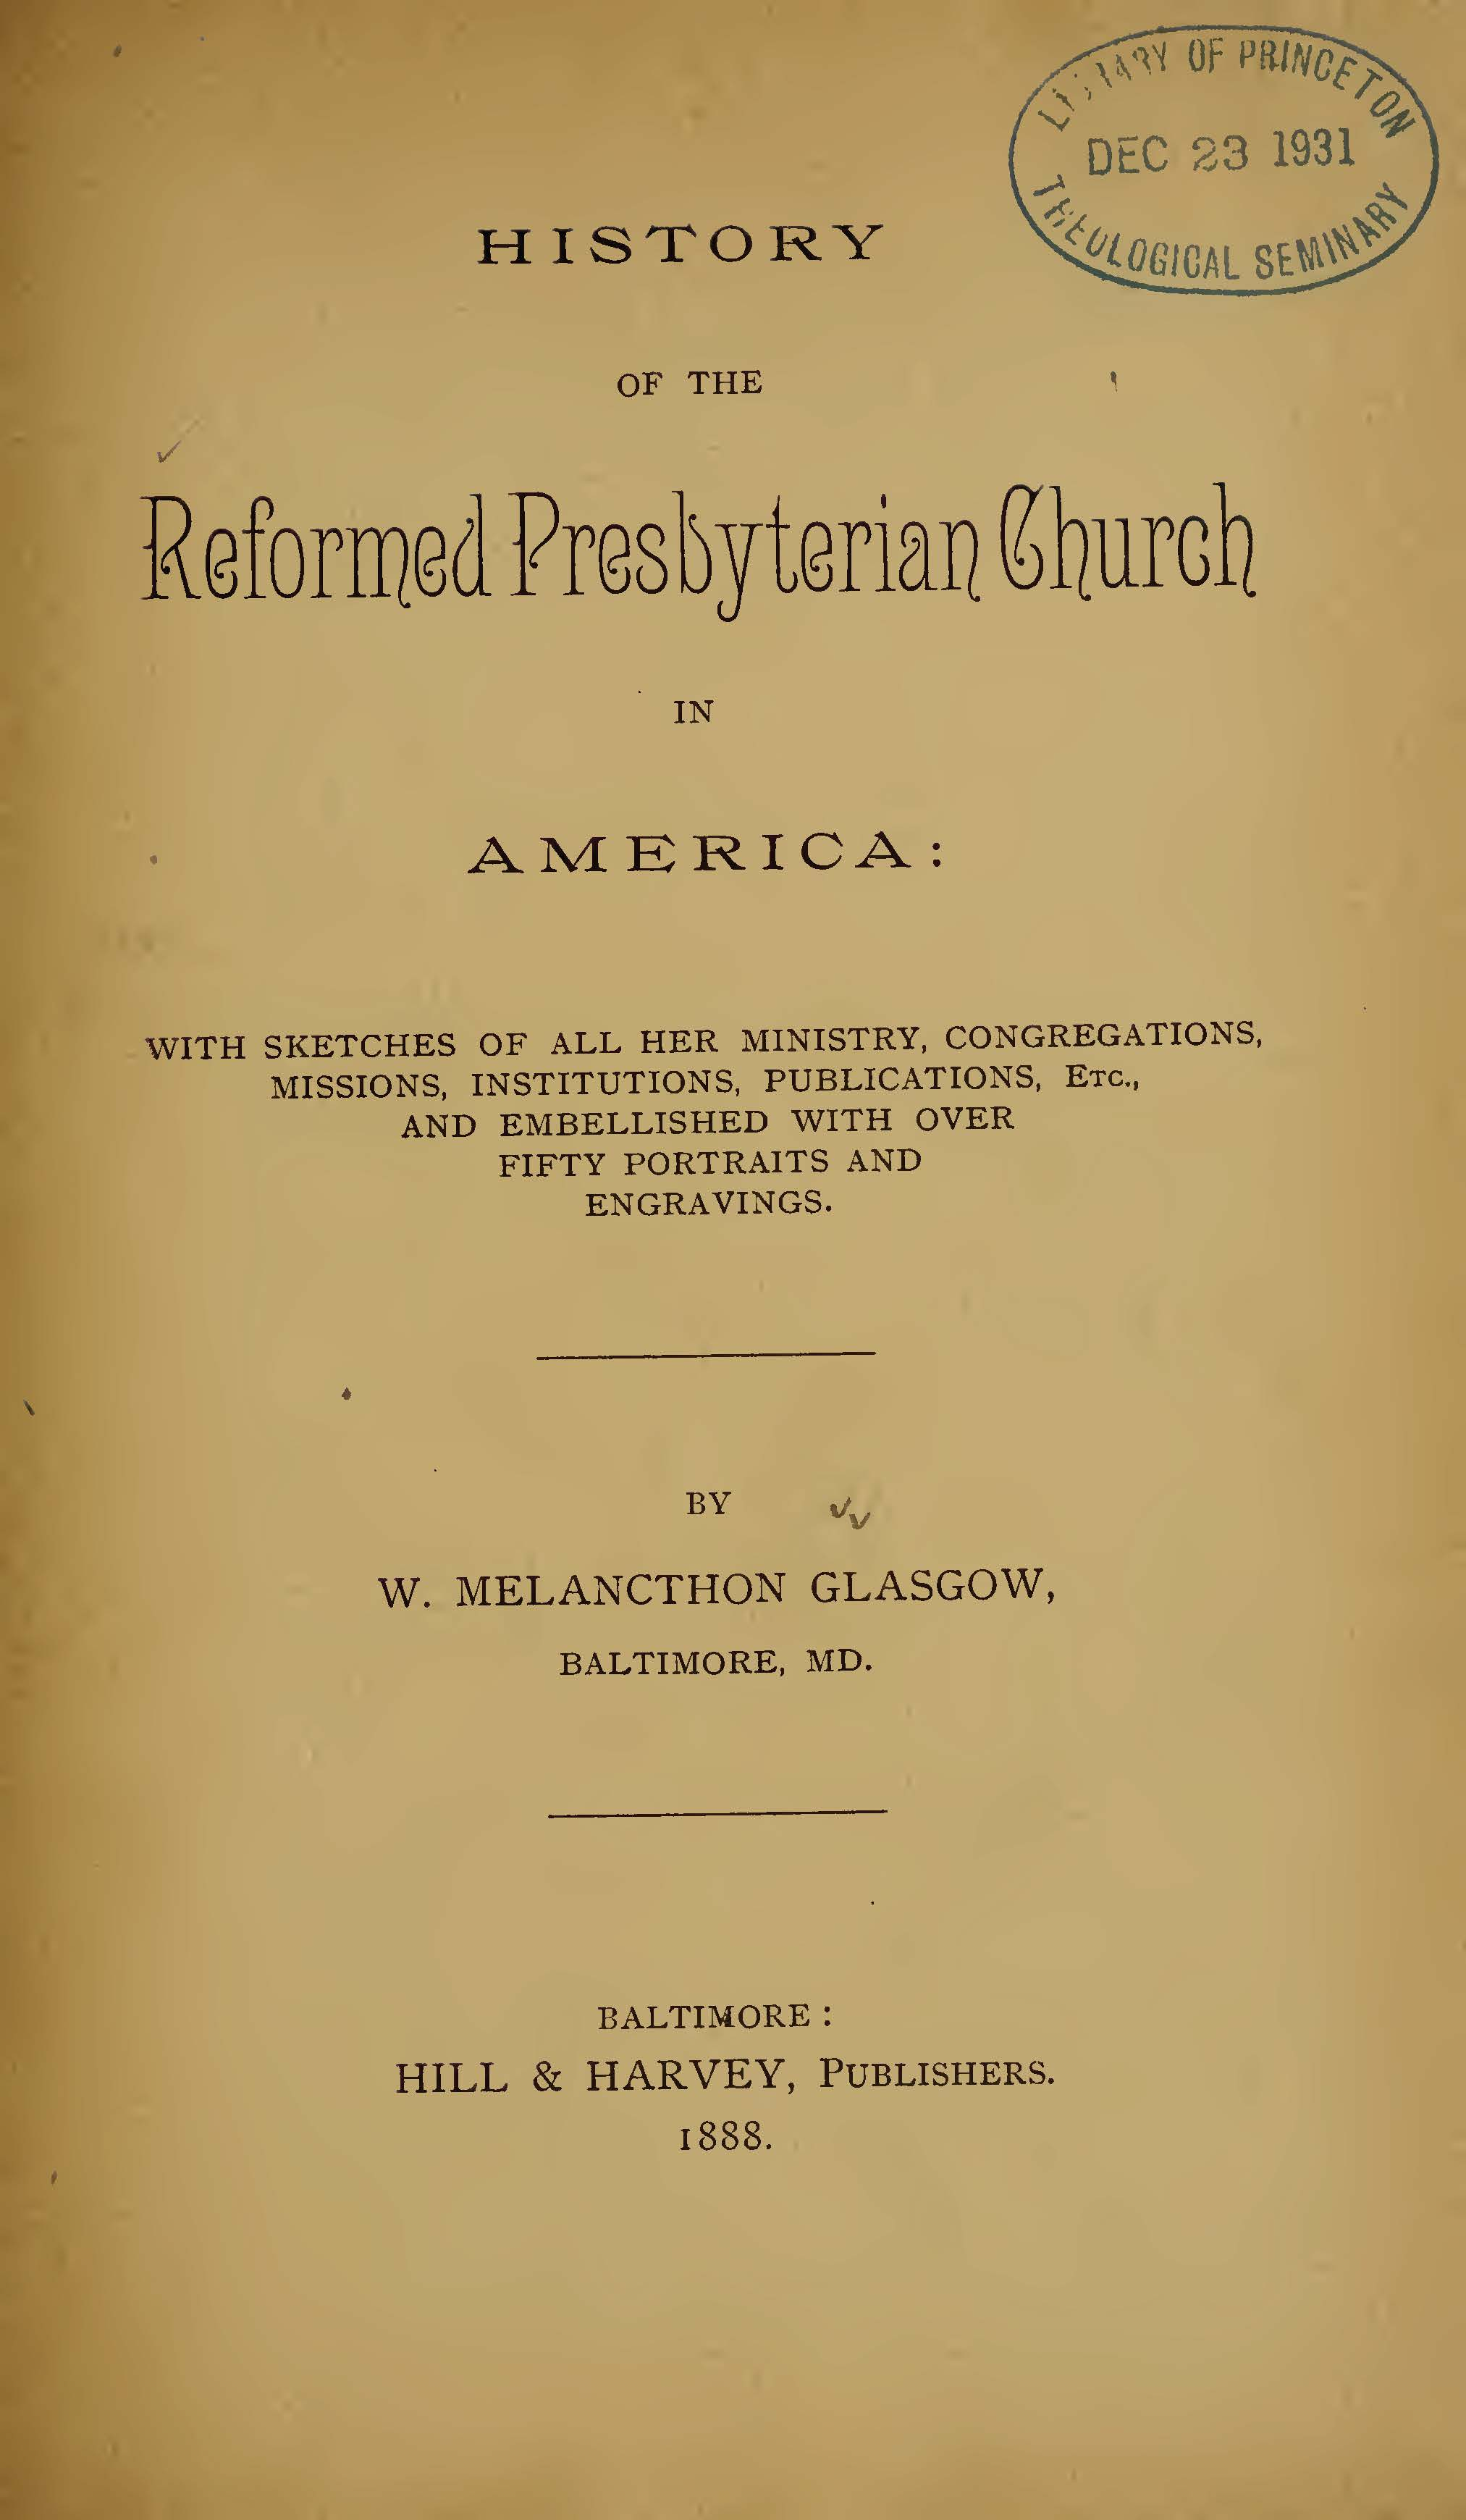 Glasgow, William Melancthon, History of the Reformed Presbyterian in America Title Page.jpg